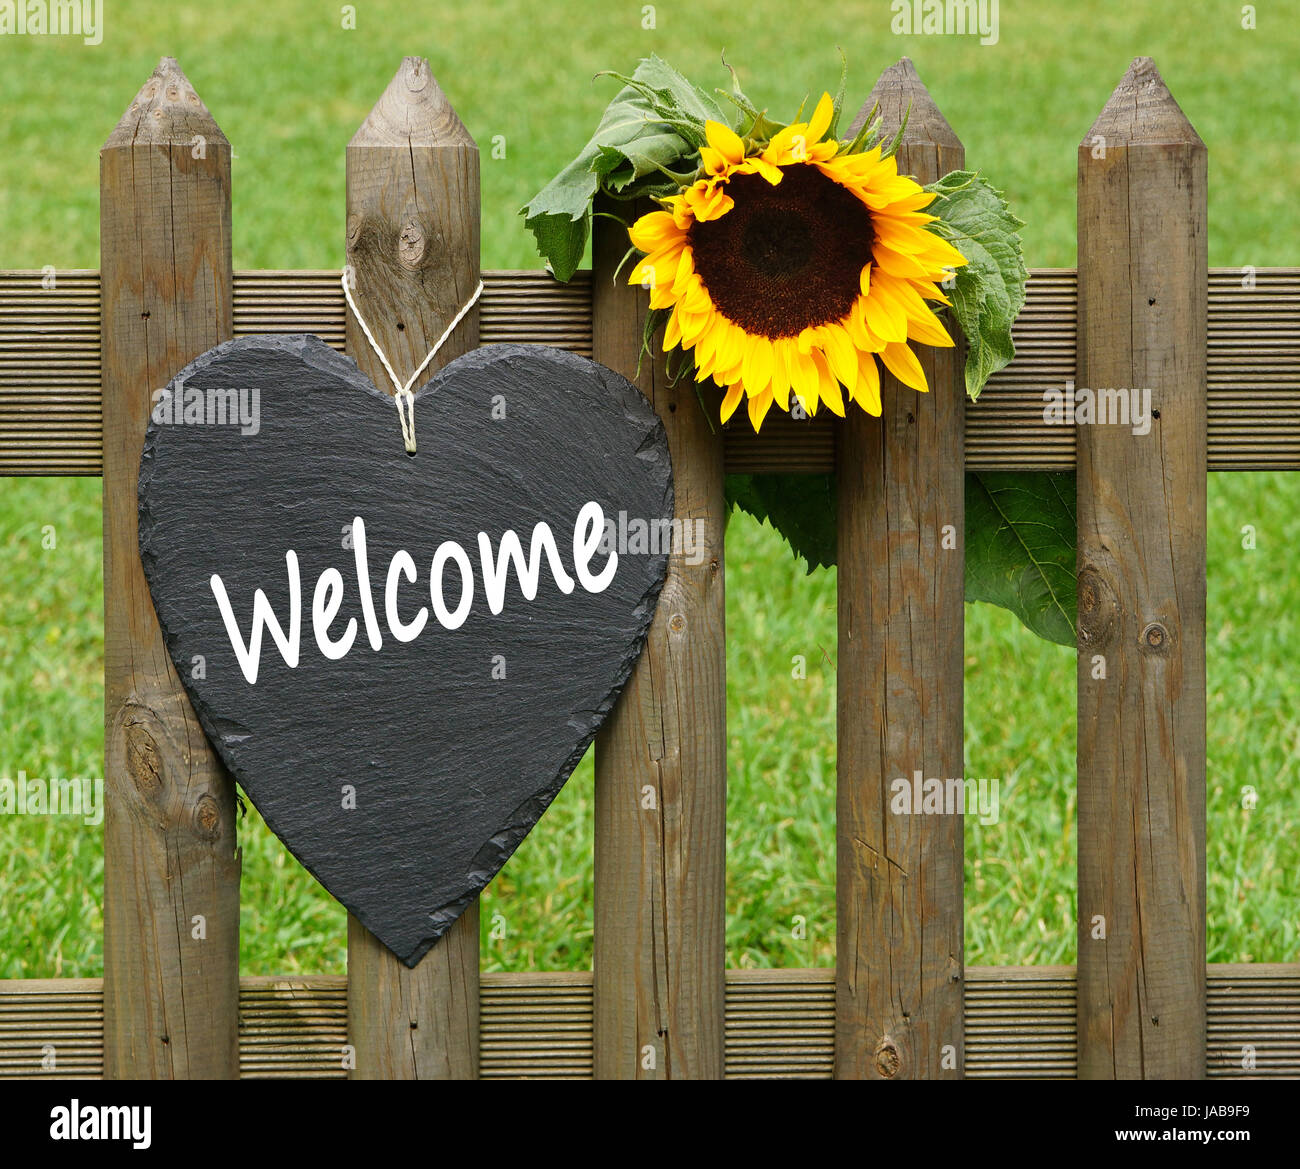 Heartily Welcome Stock Photos & Heartily Welcome Stock